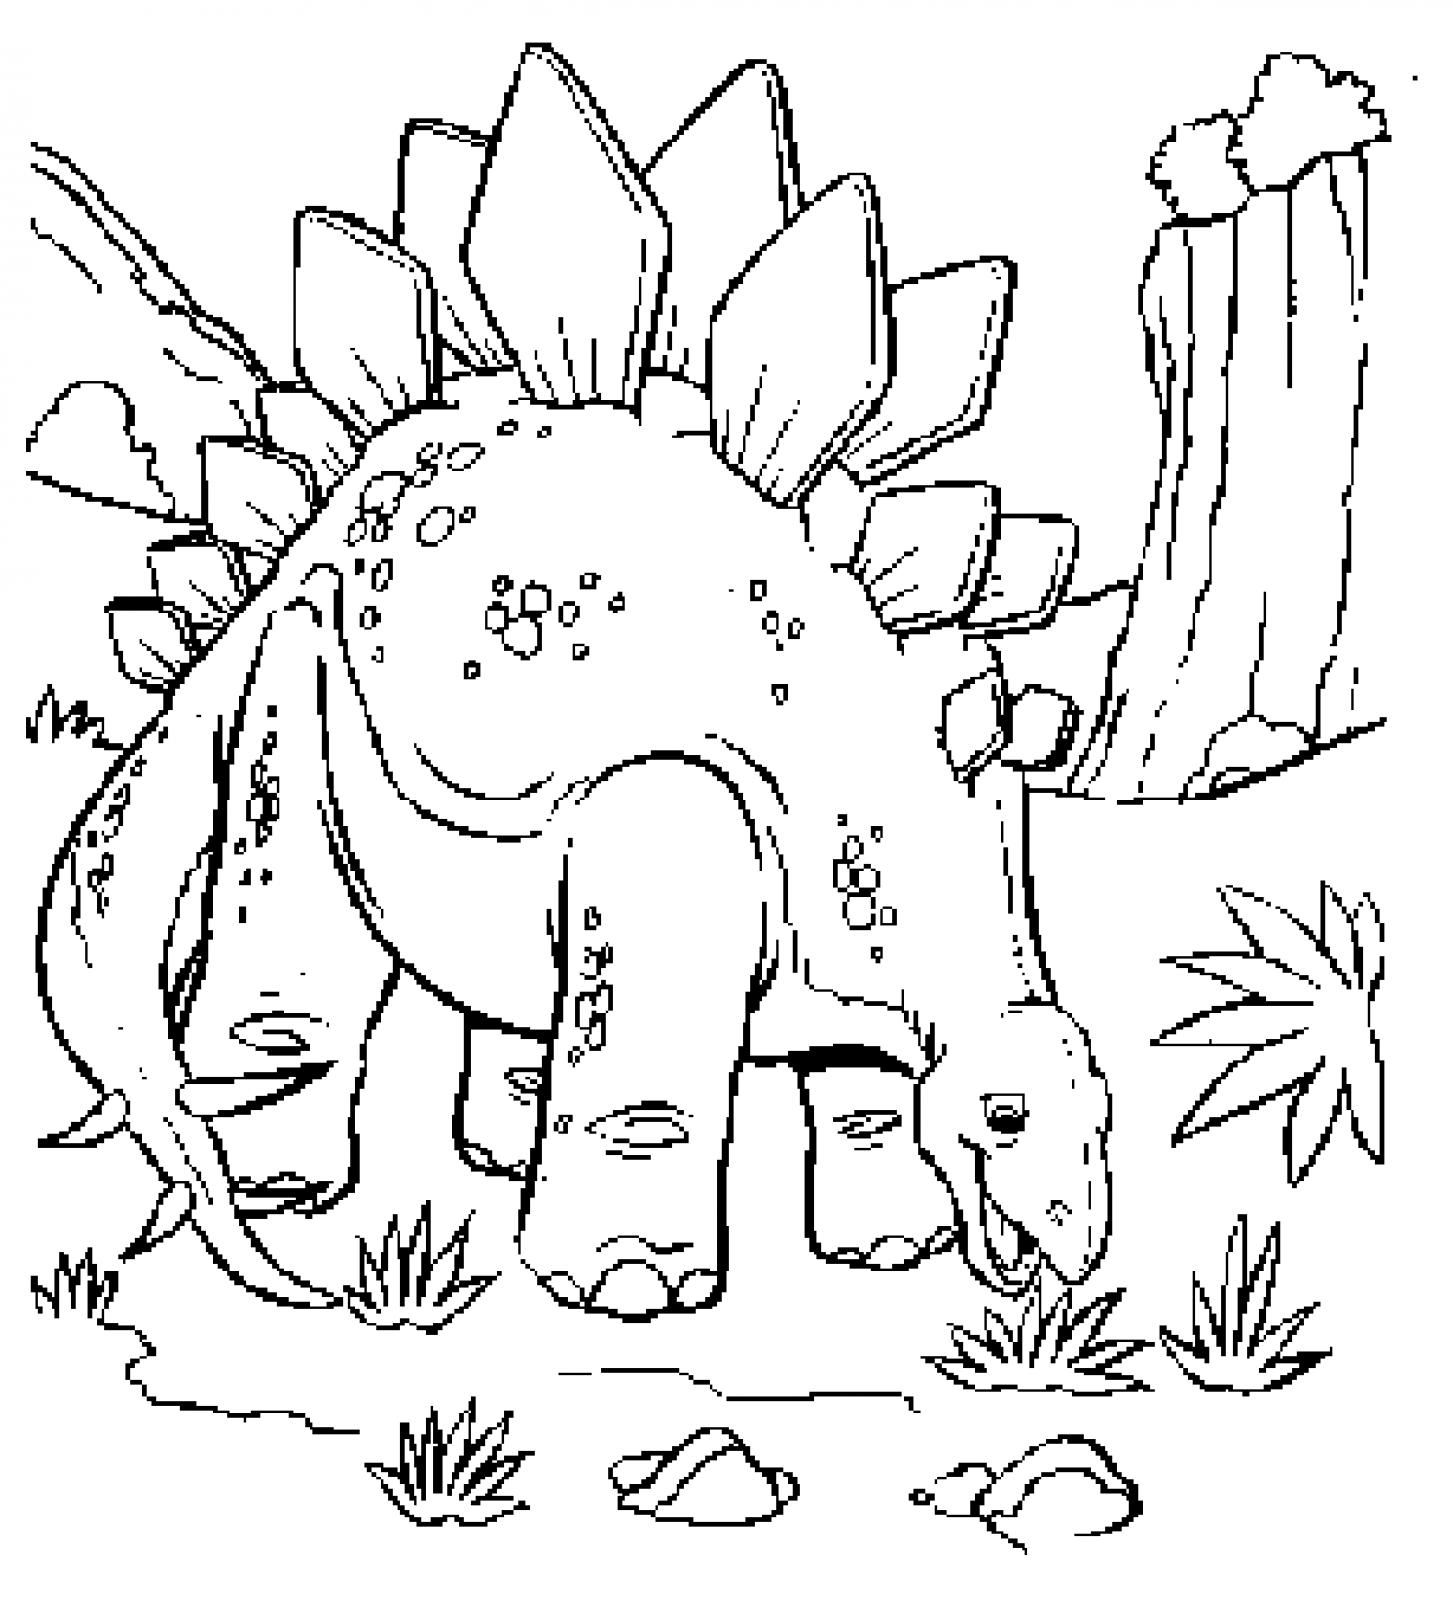 Real looking dinosaur coloring pages - Free Coloring Pages Jurassic Park Dinosaur Coloring Pages Do You Looking For A Dinosaur Coloring